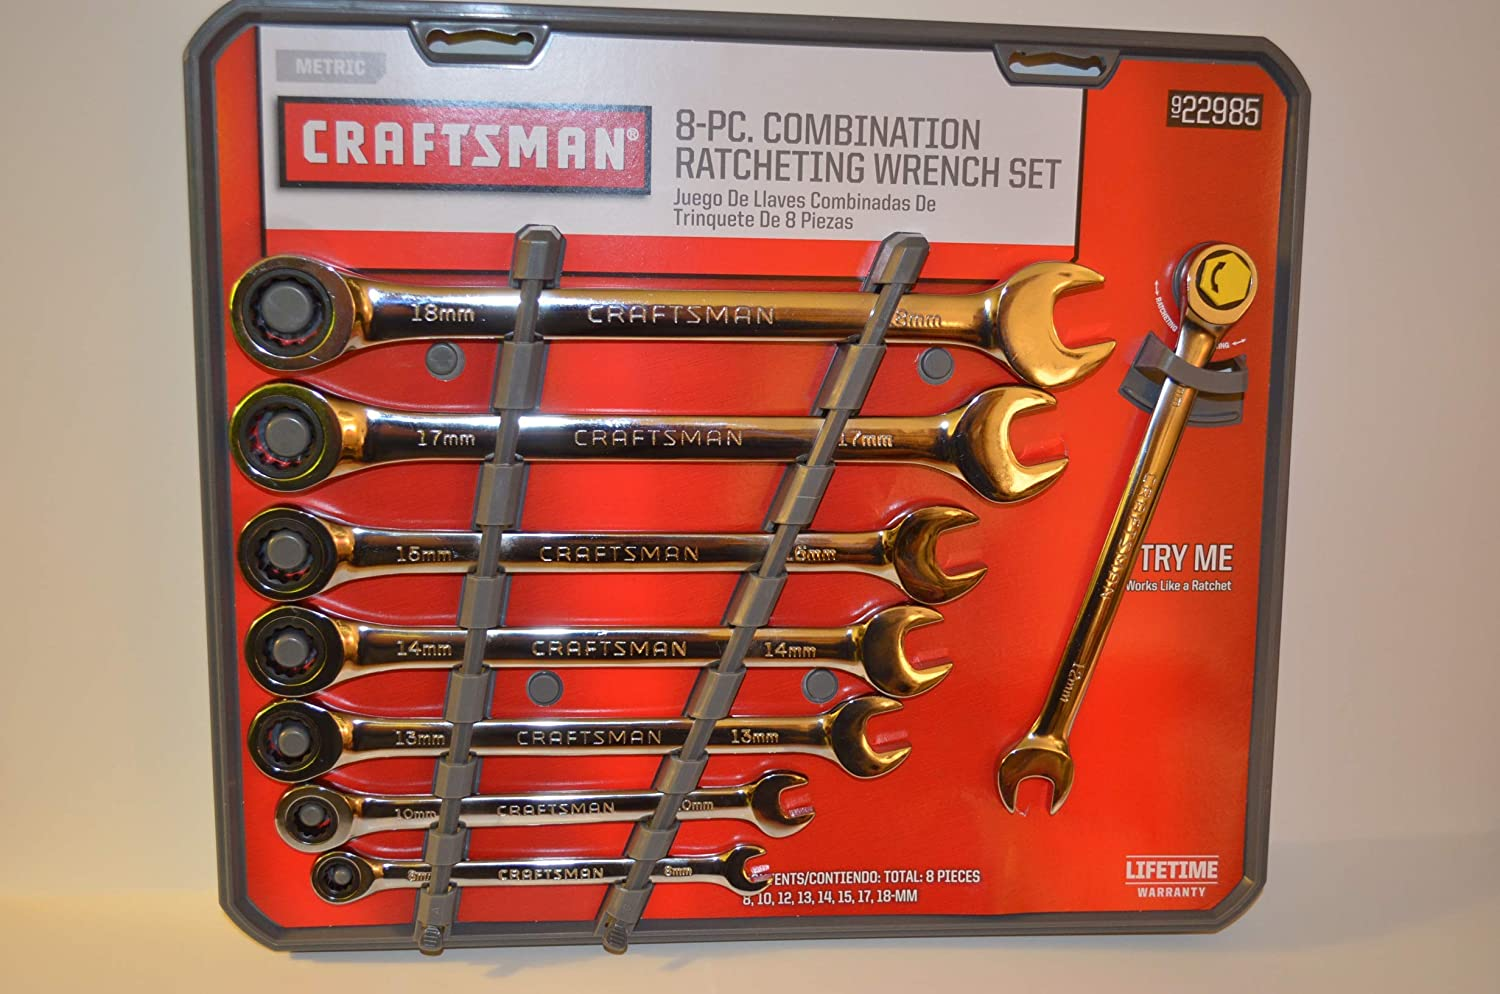 New Craftsman Ratcheting Combination Wrench